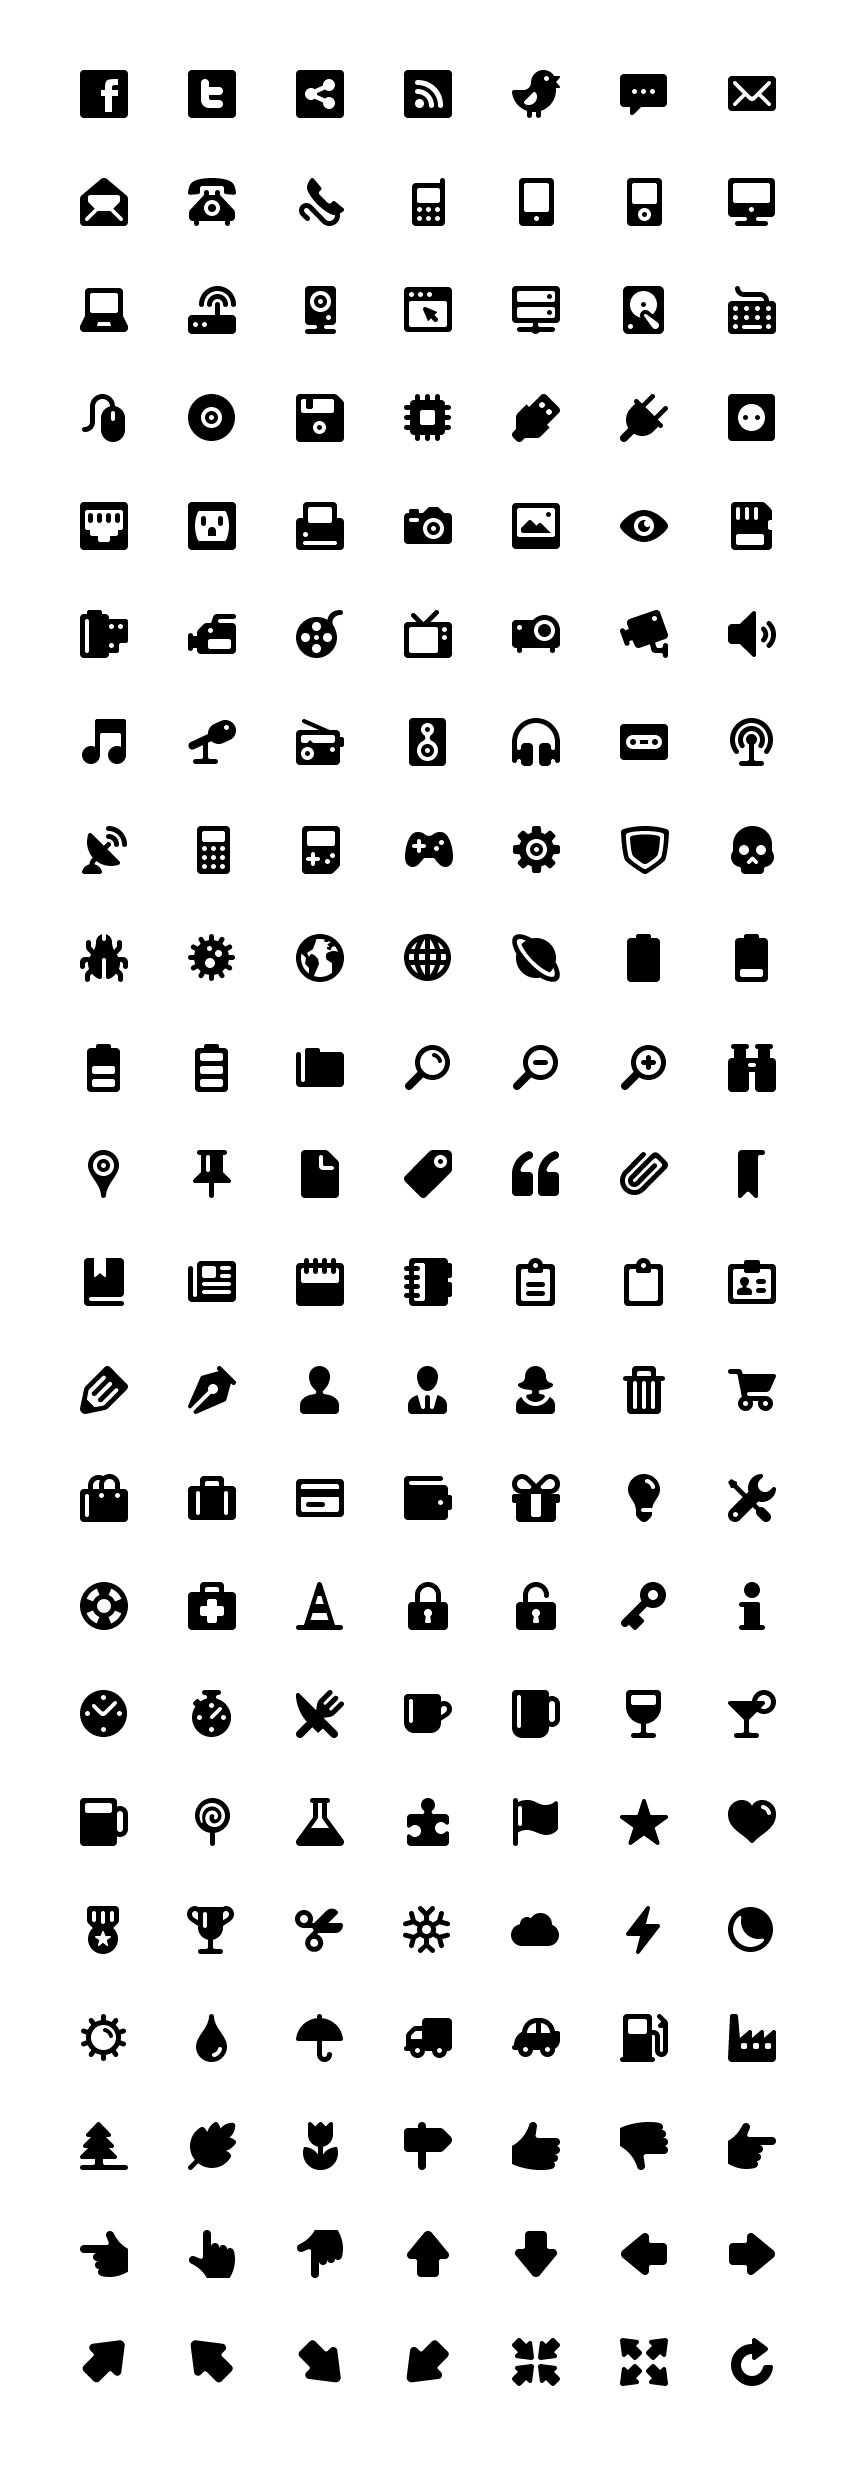 icons-layered.png